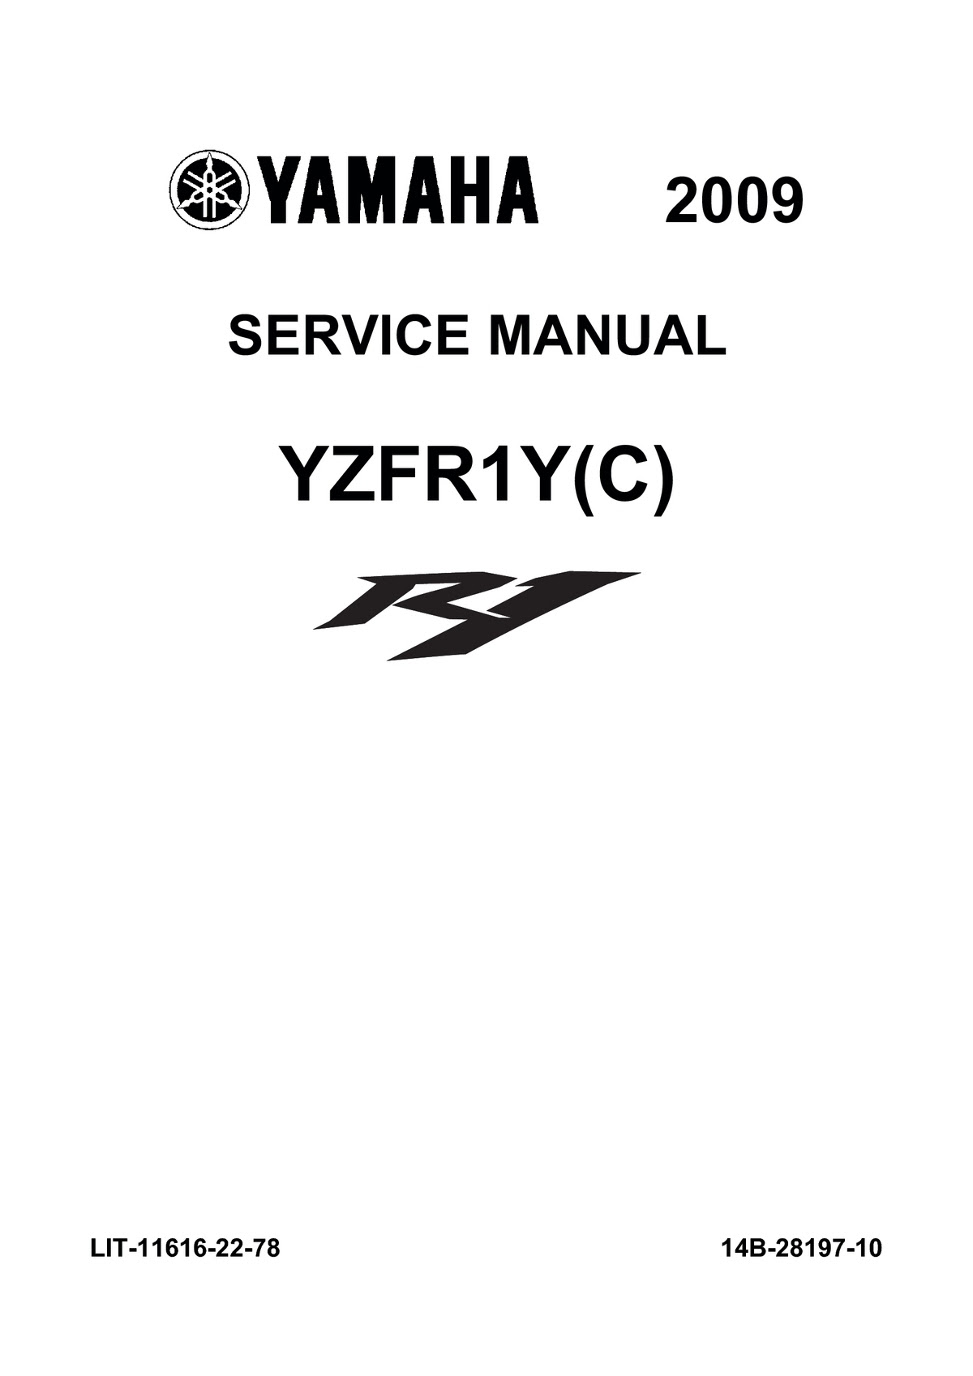 Wiring Manual PDF: 0042702 Generac Fuel Filter